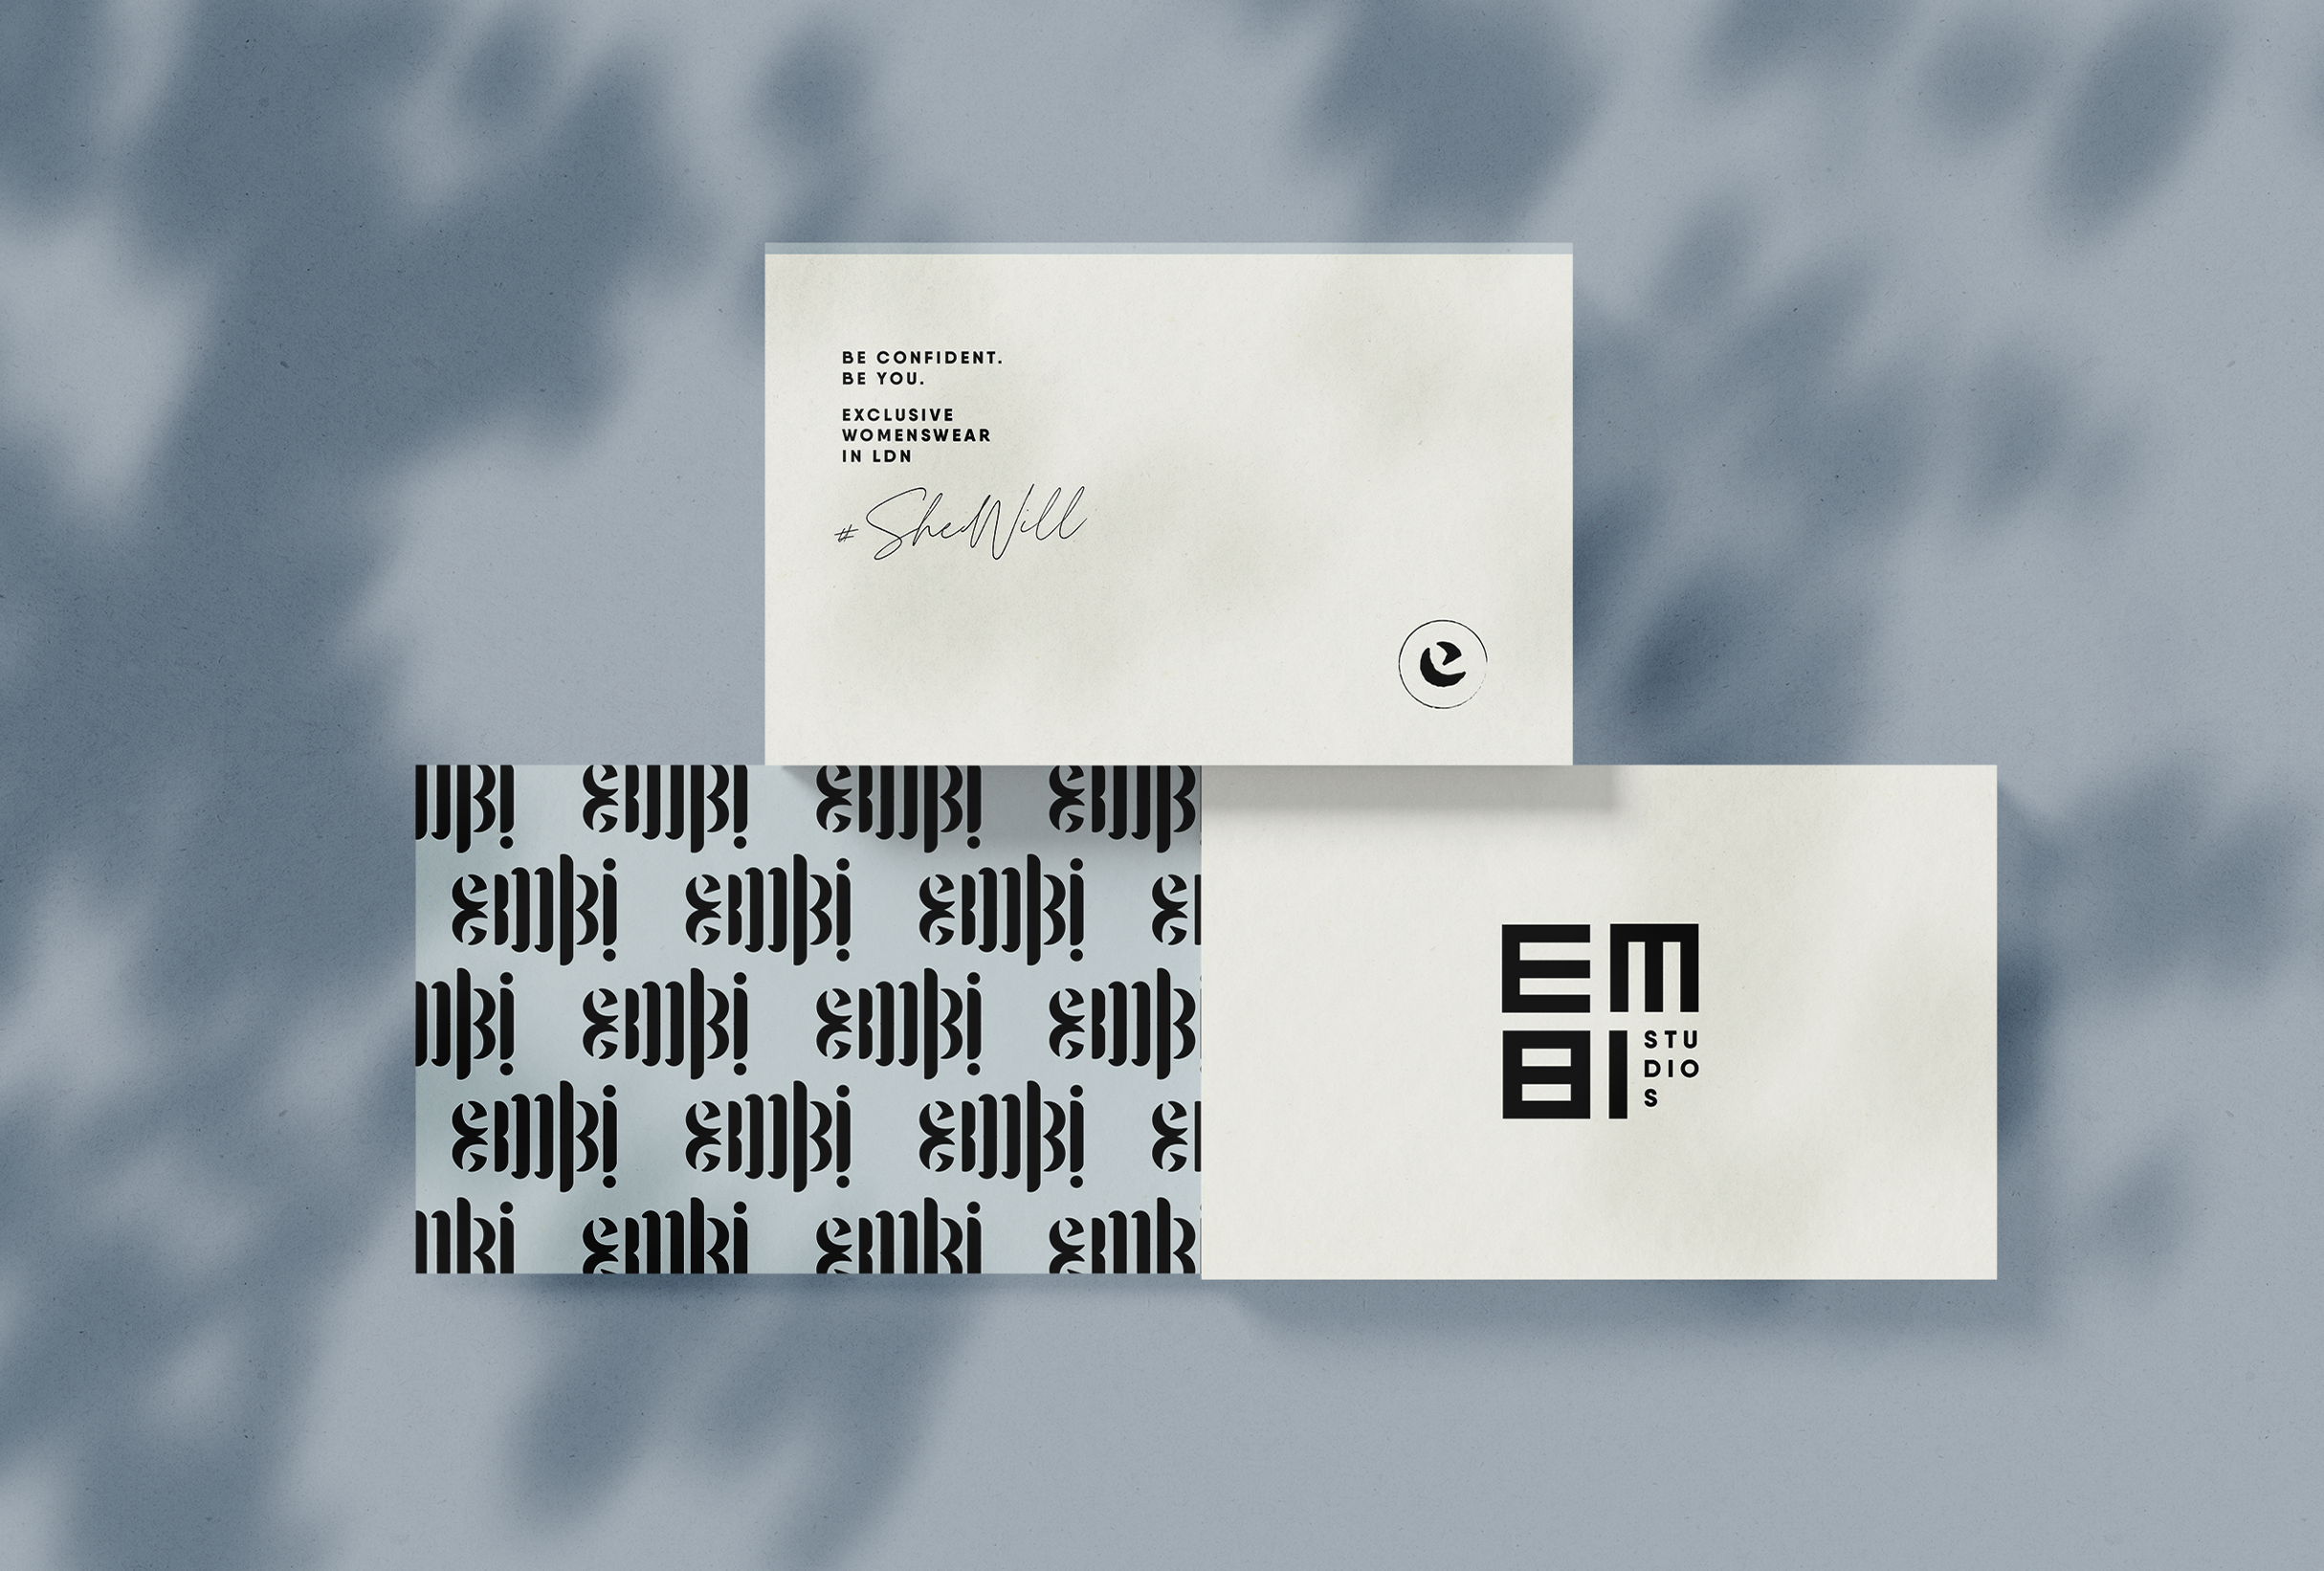 Business card design for Embi Studios, London-based clothing line offering unique items and limited edition seasons - designed by Wiltshire-based graphic designer, Kaye Huett